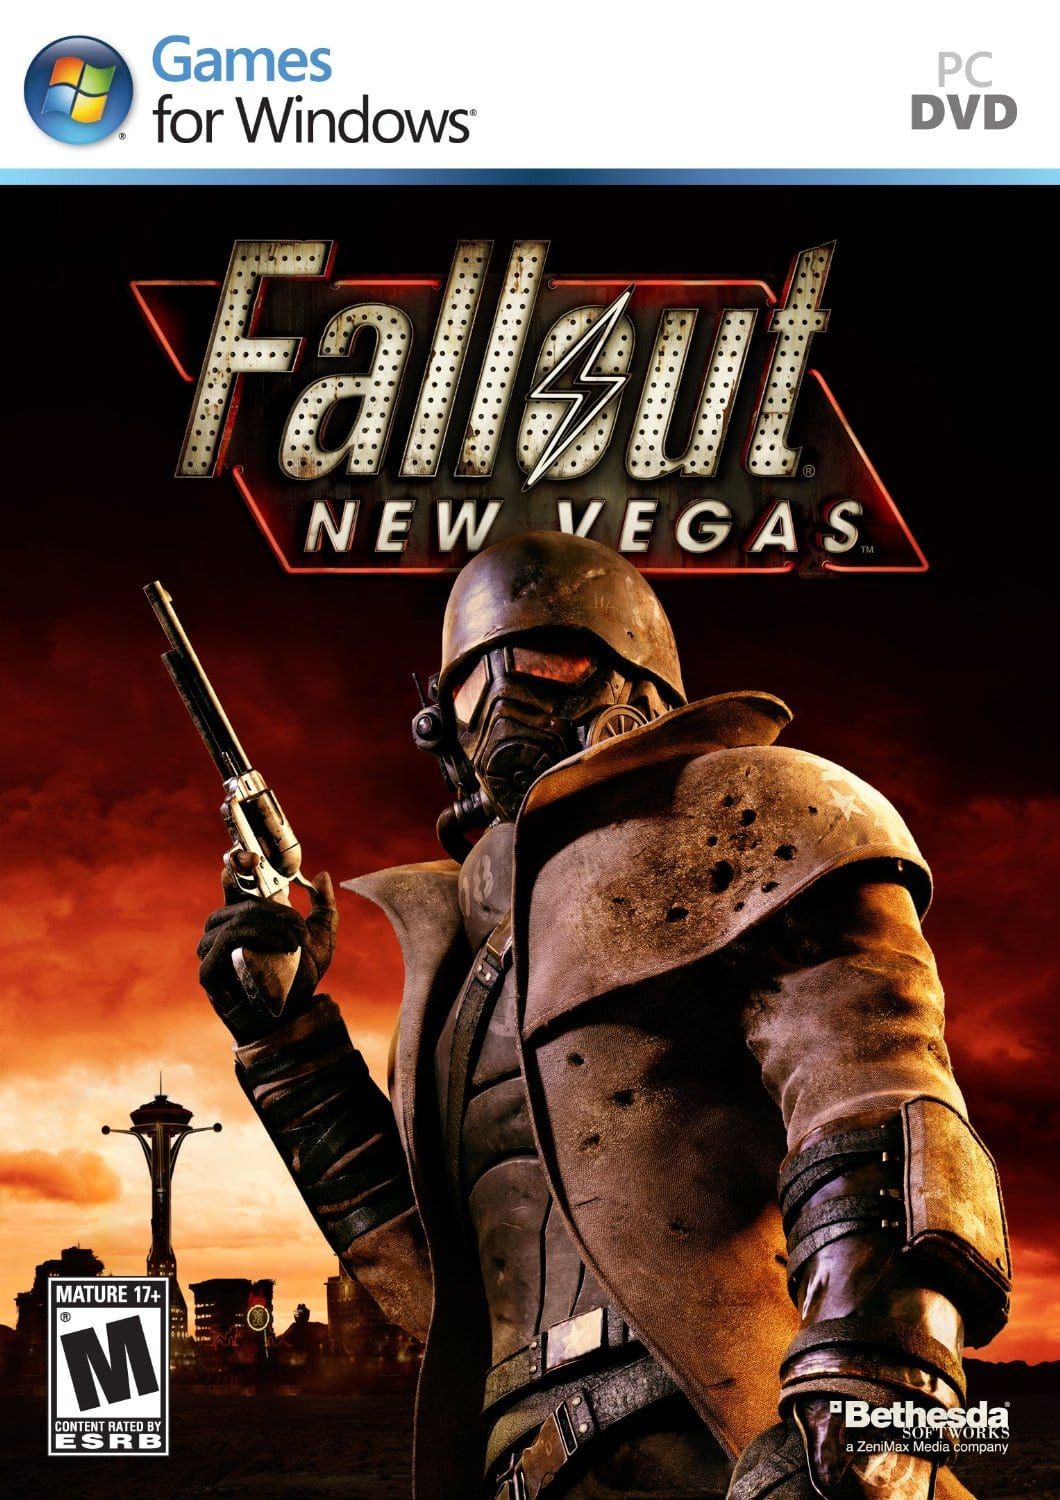 Fallout PC Download Games: Fallout New Vegas or Fallout 3  $2.50 & More